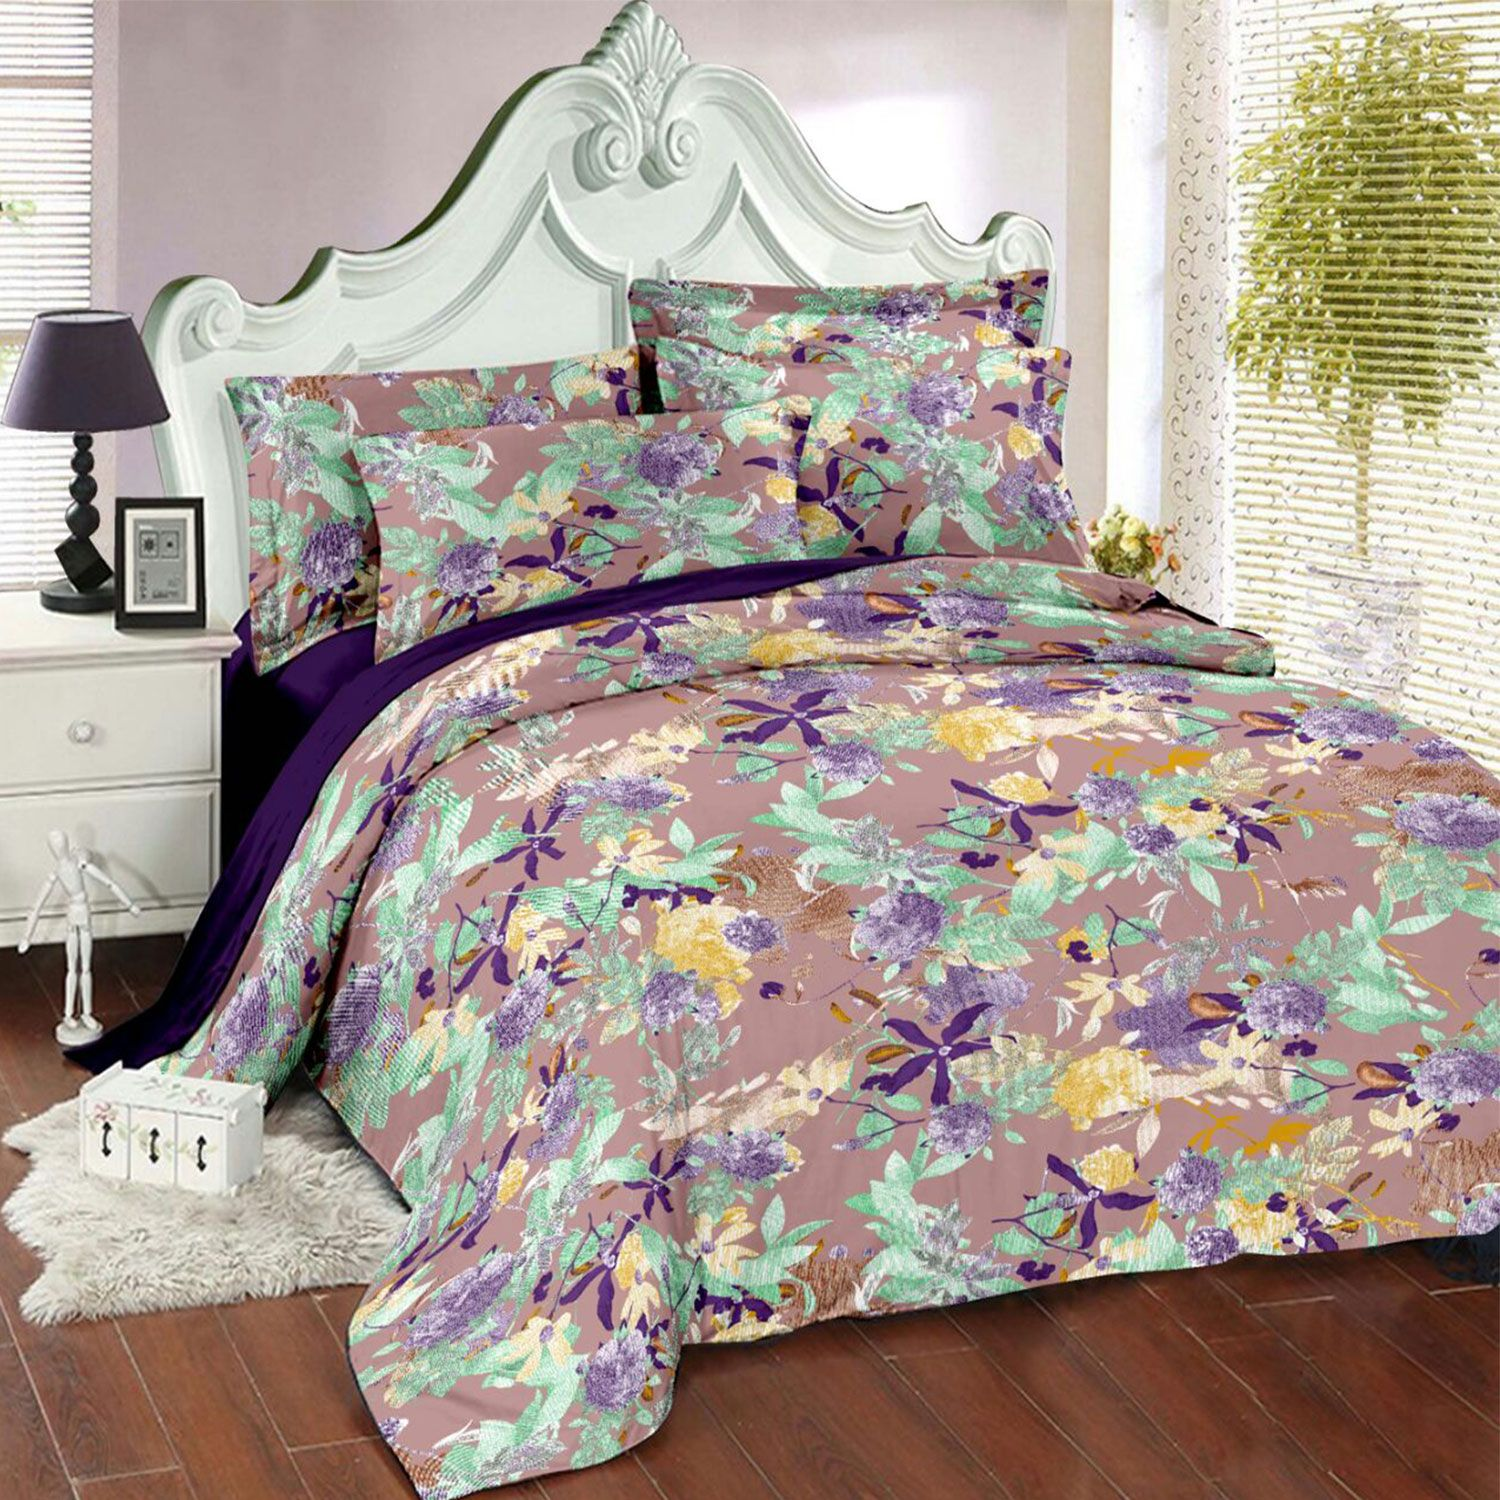 Always Plus 100 cotton double bedsheets Bed sheets, Bed